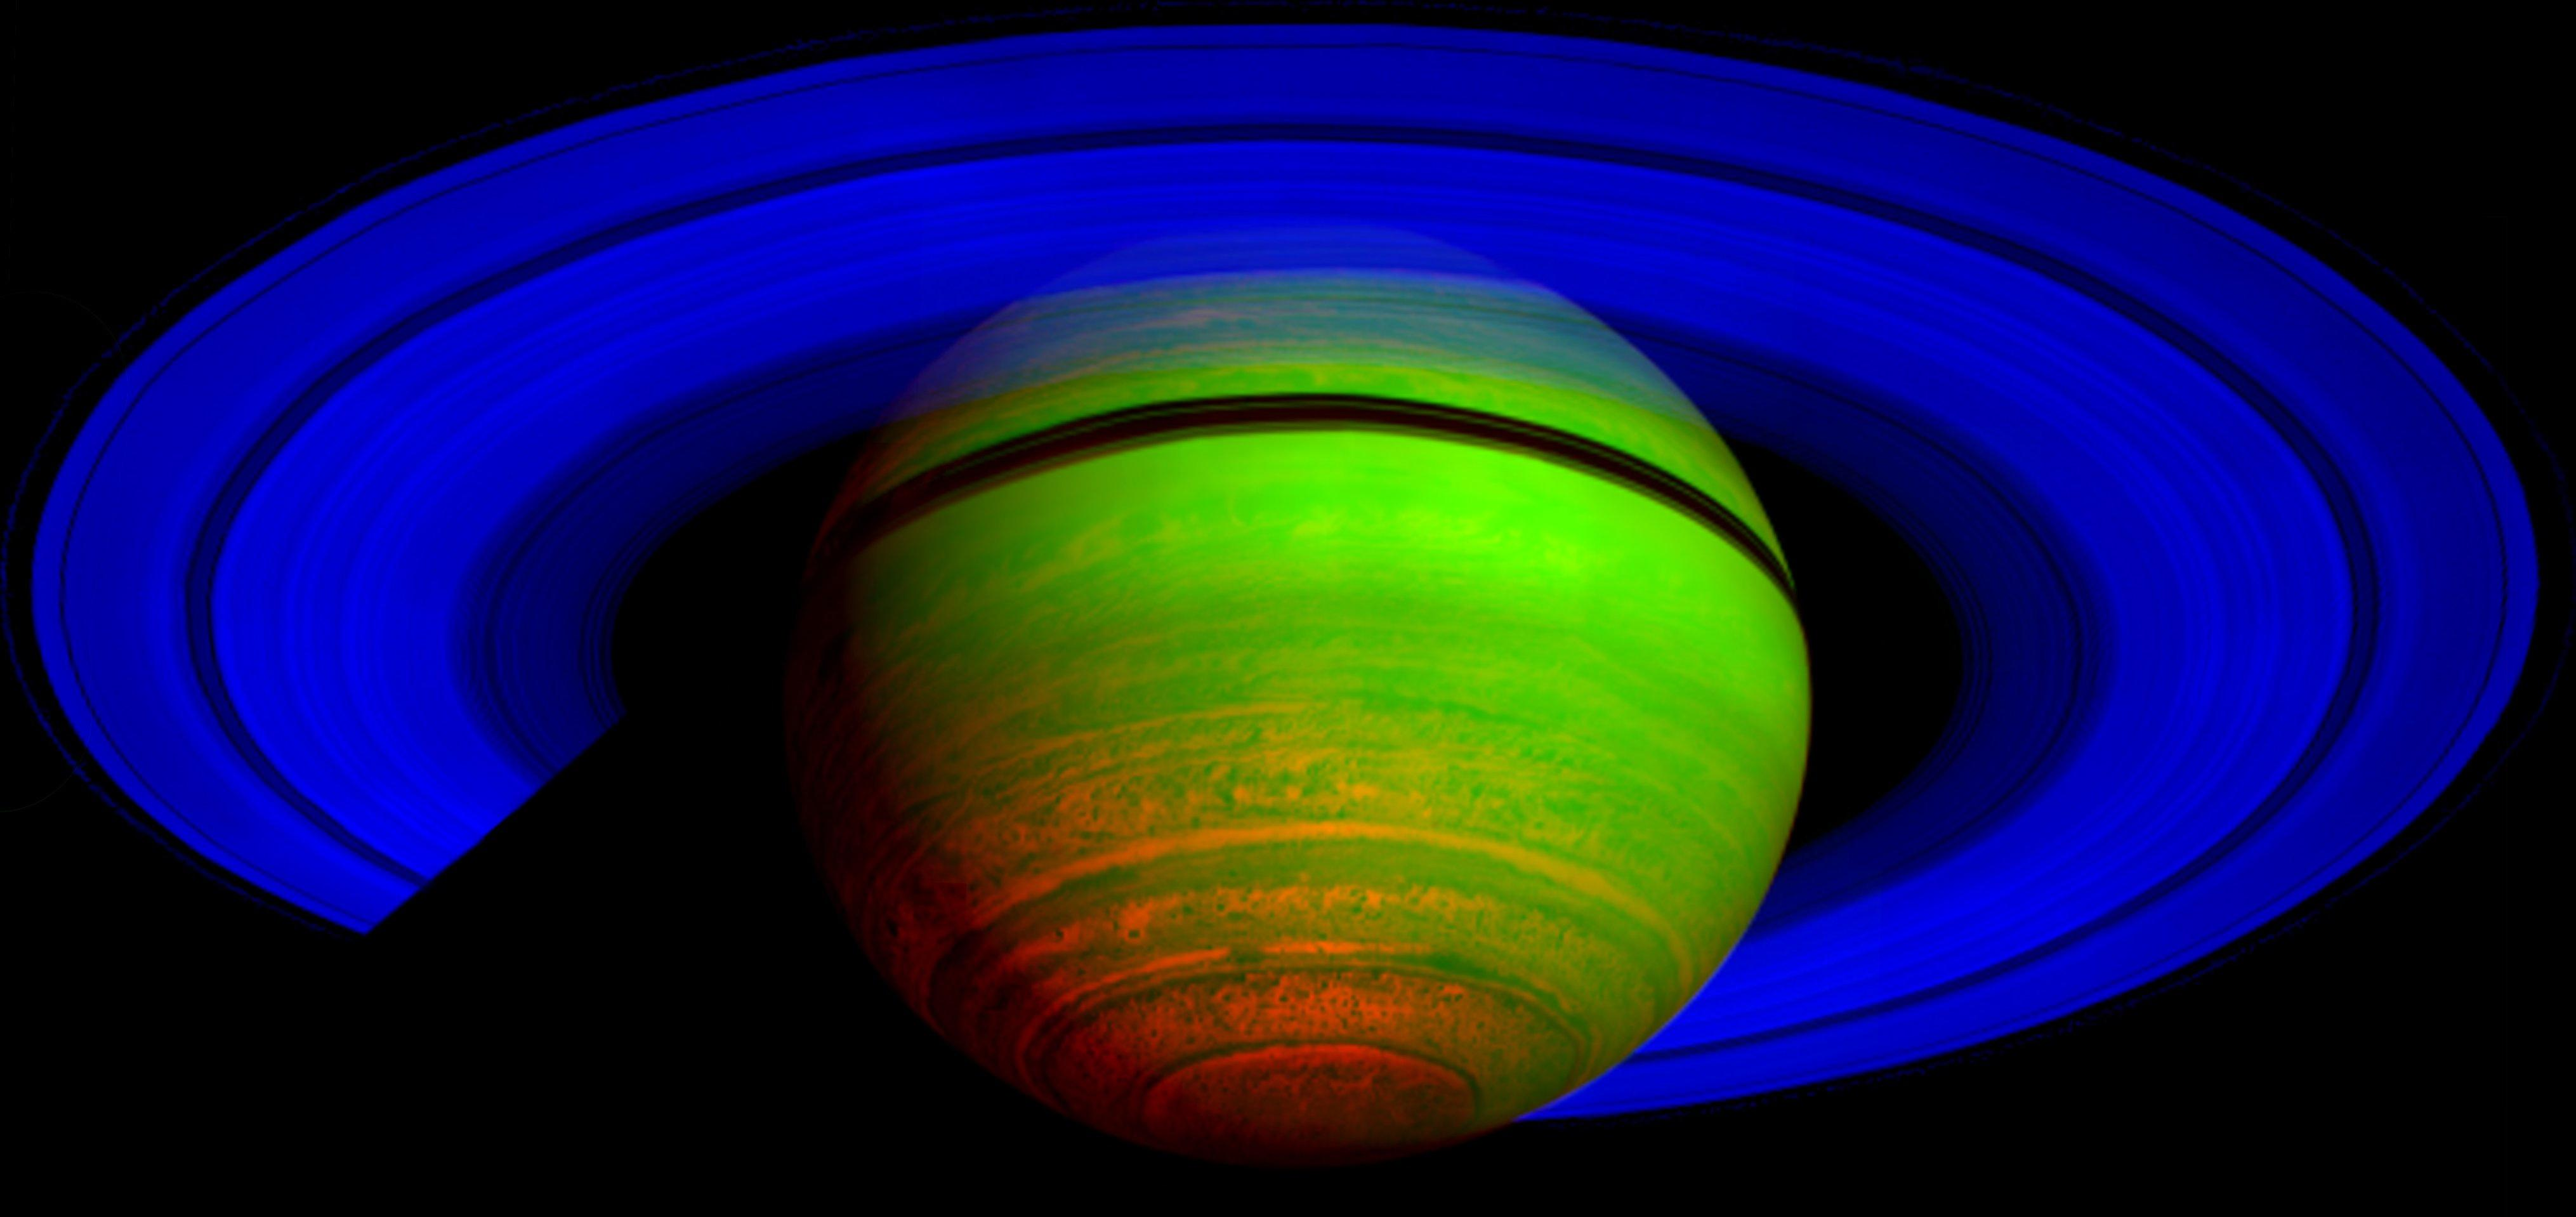 NASA - Majestic Saturn, in the Infrared